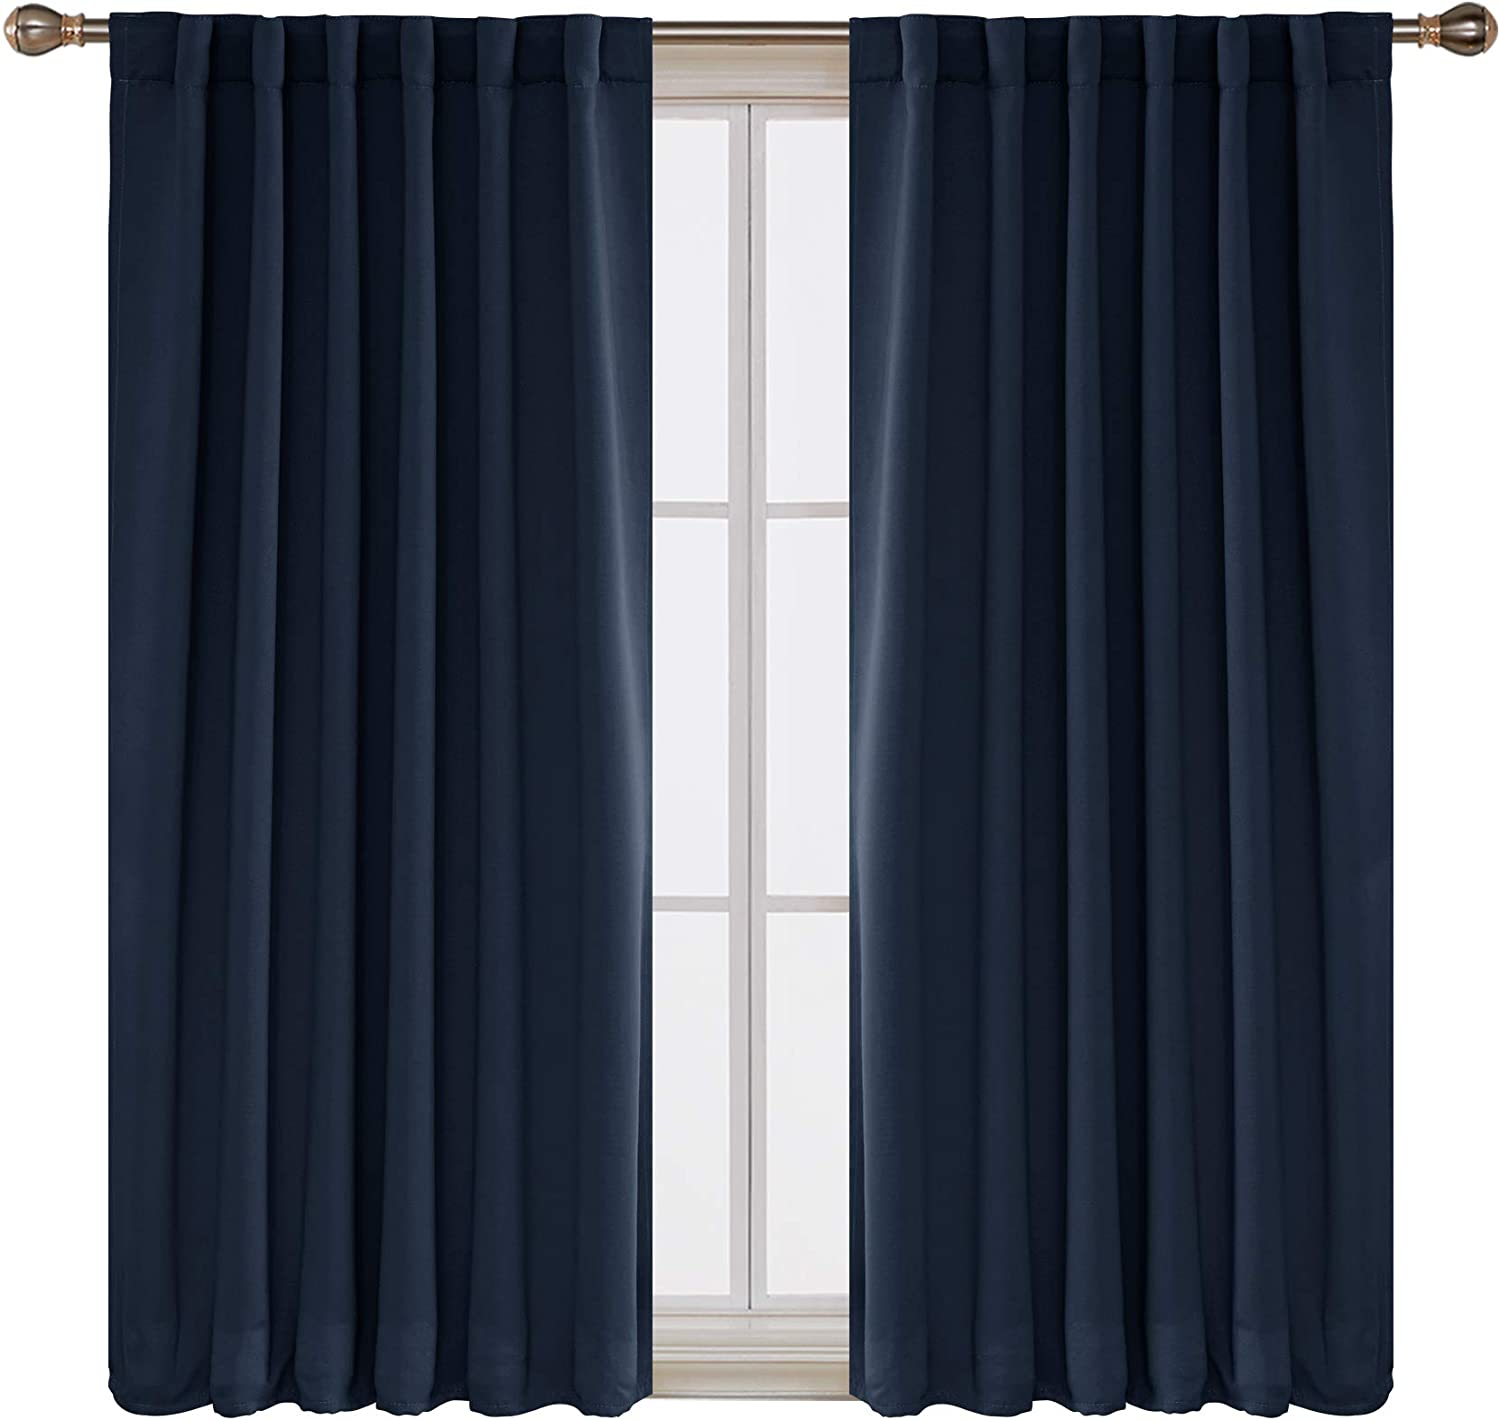 Deconovo Solid Back Tab and Rod Pocket Curtains Thermal Insulated Blackout Window Curtains for Kitchen 52x54 Inch Navy Blue 2 Panels